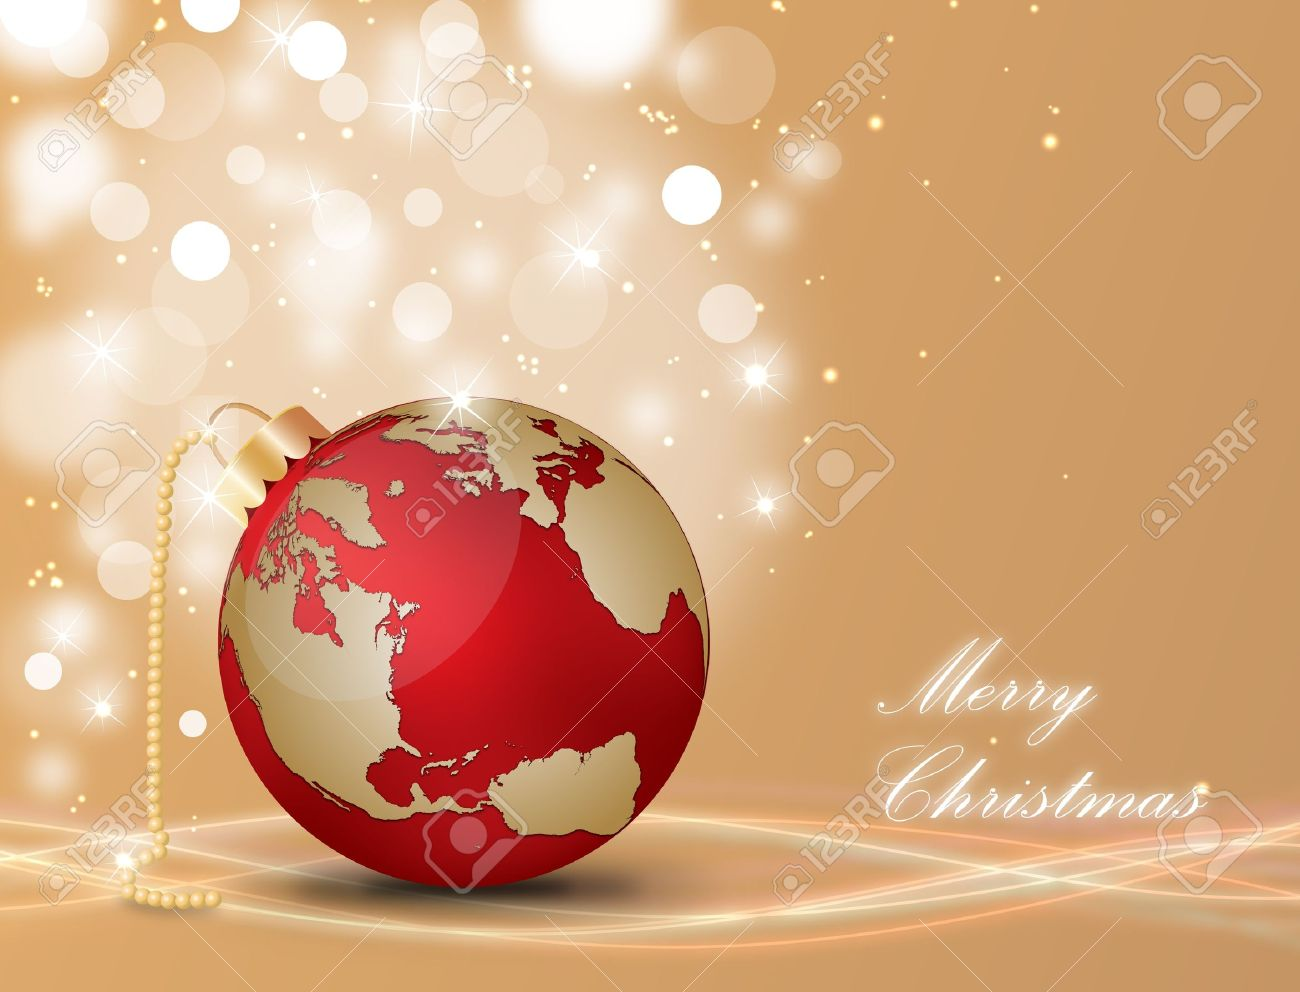 15081104-christmas-ball-with-world-map-on-a-decorated-background-stock-vector